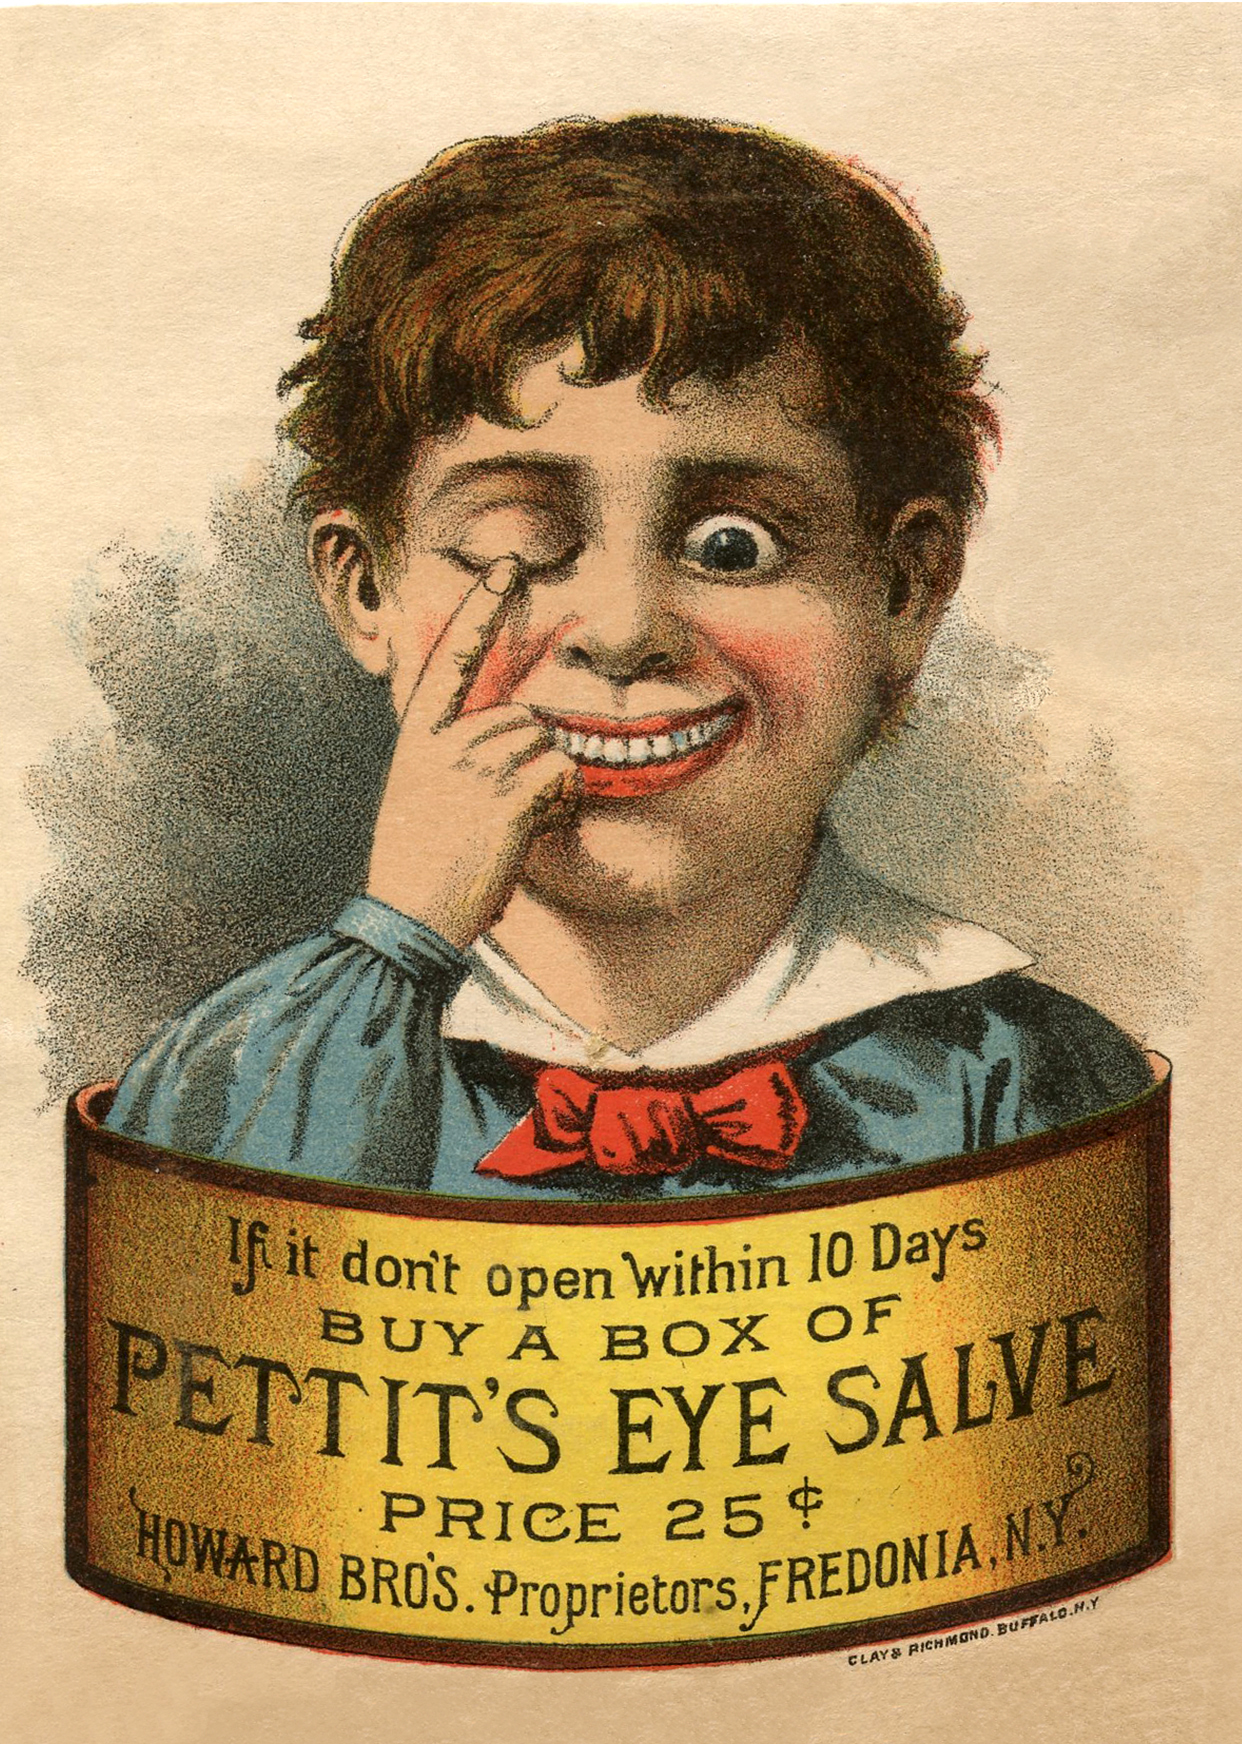 Quirky Vintage Eye Salve Image